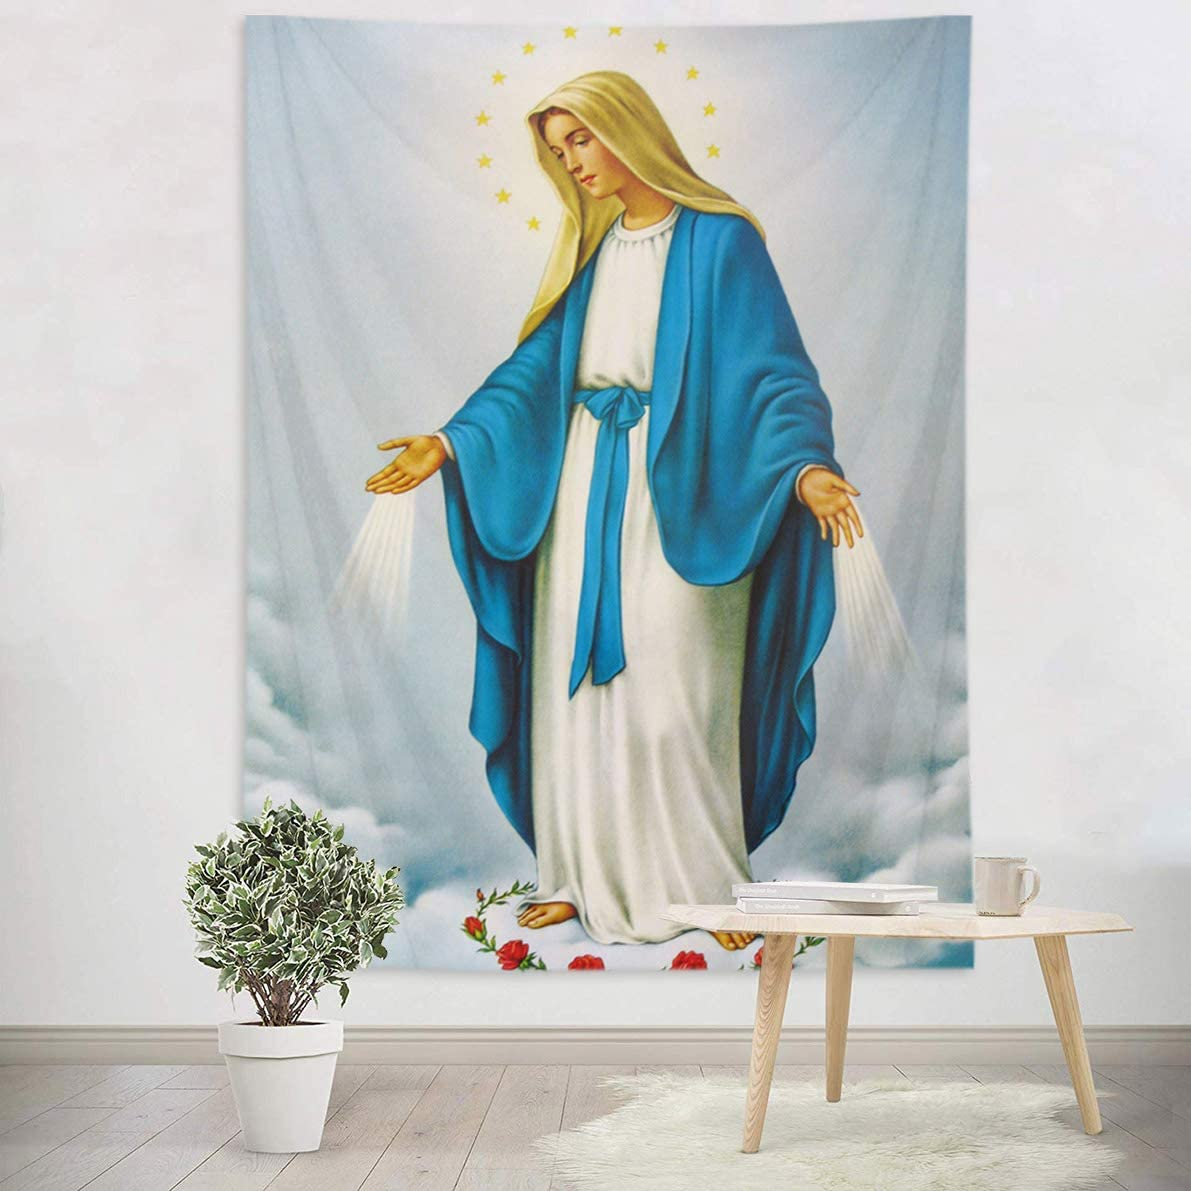 HVEST Blessed Virgin Mary Tapestry Mother of God Tapestry Wall Hanging Christian Wall Art Decorations Jesus Christ Wall Tapestry Holy Mary Backdrop for Bedroom Room Dorm Decor,80Wx60H inches